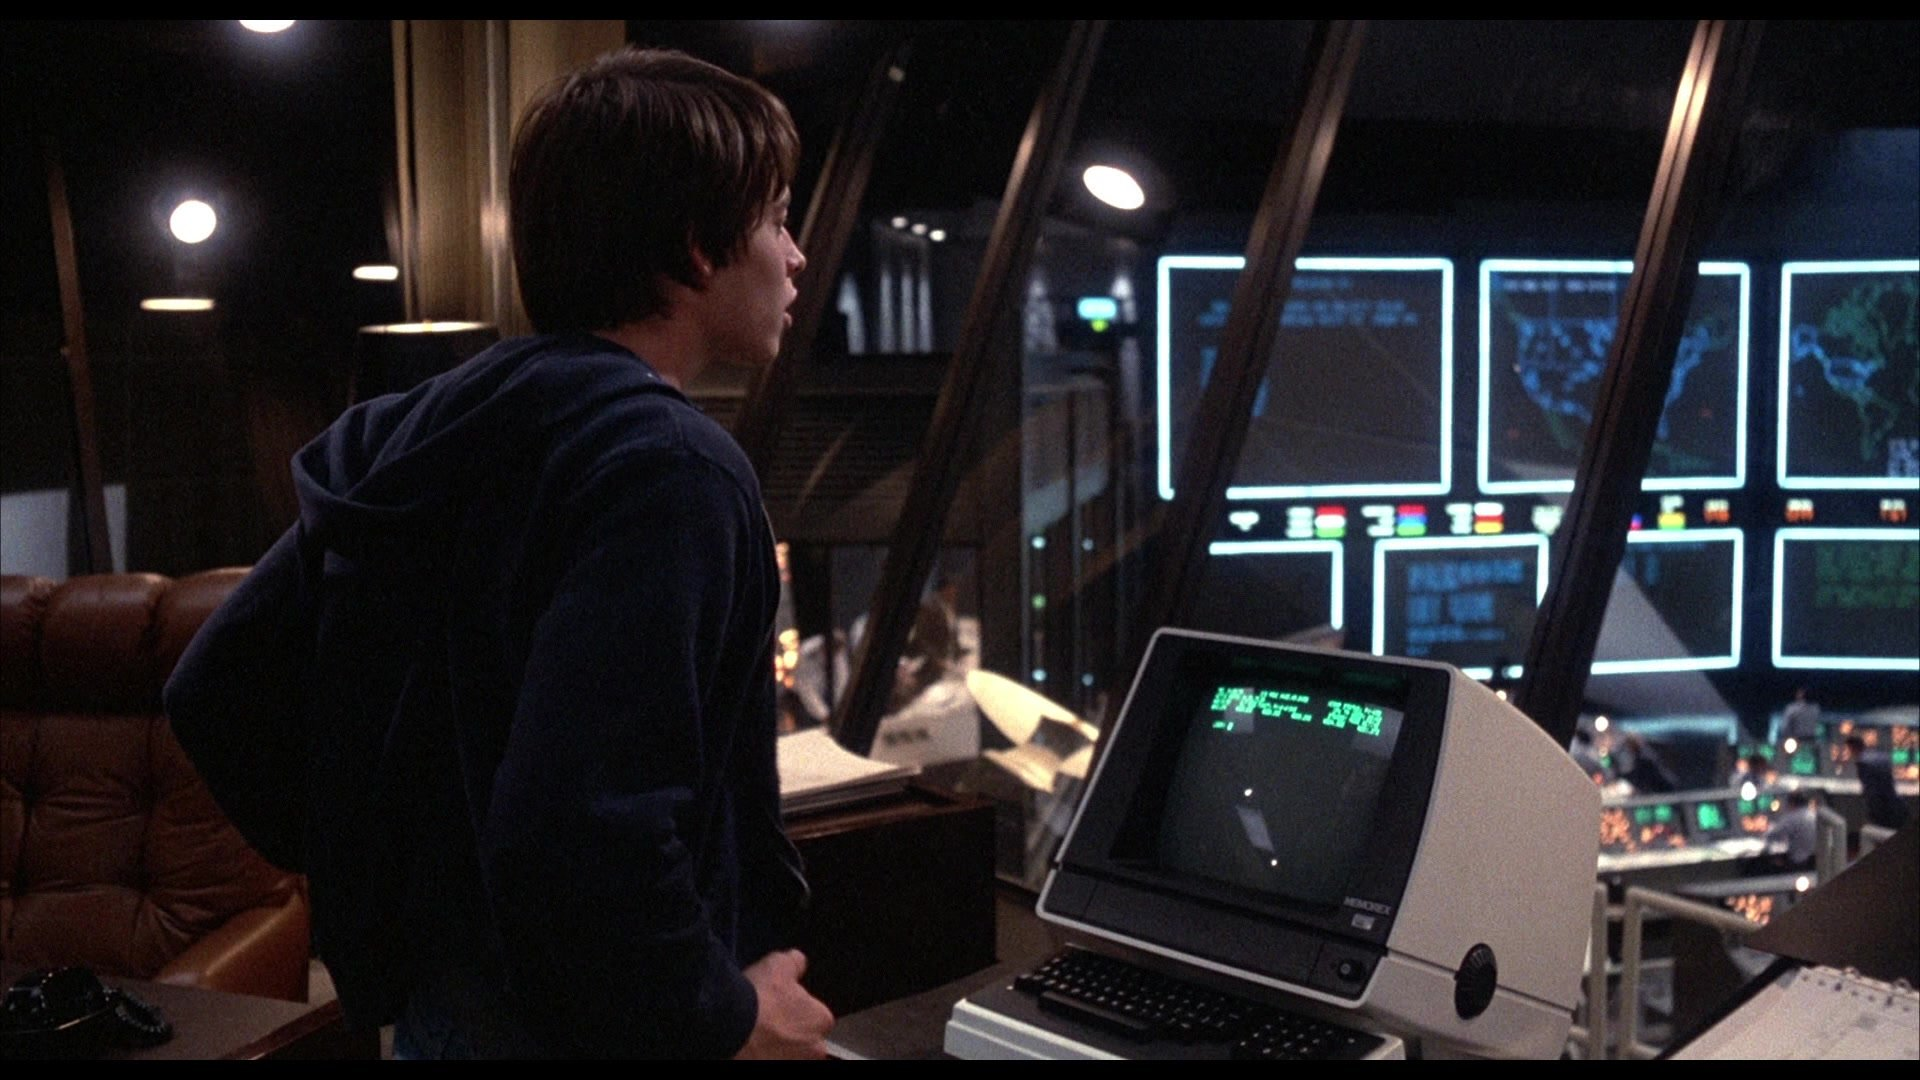 11 29 Shall We Play A Game? Here Are 20 Facts About WarGames!